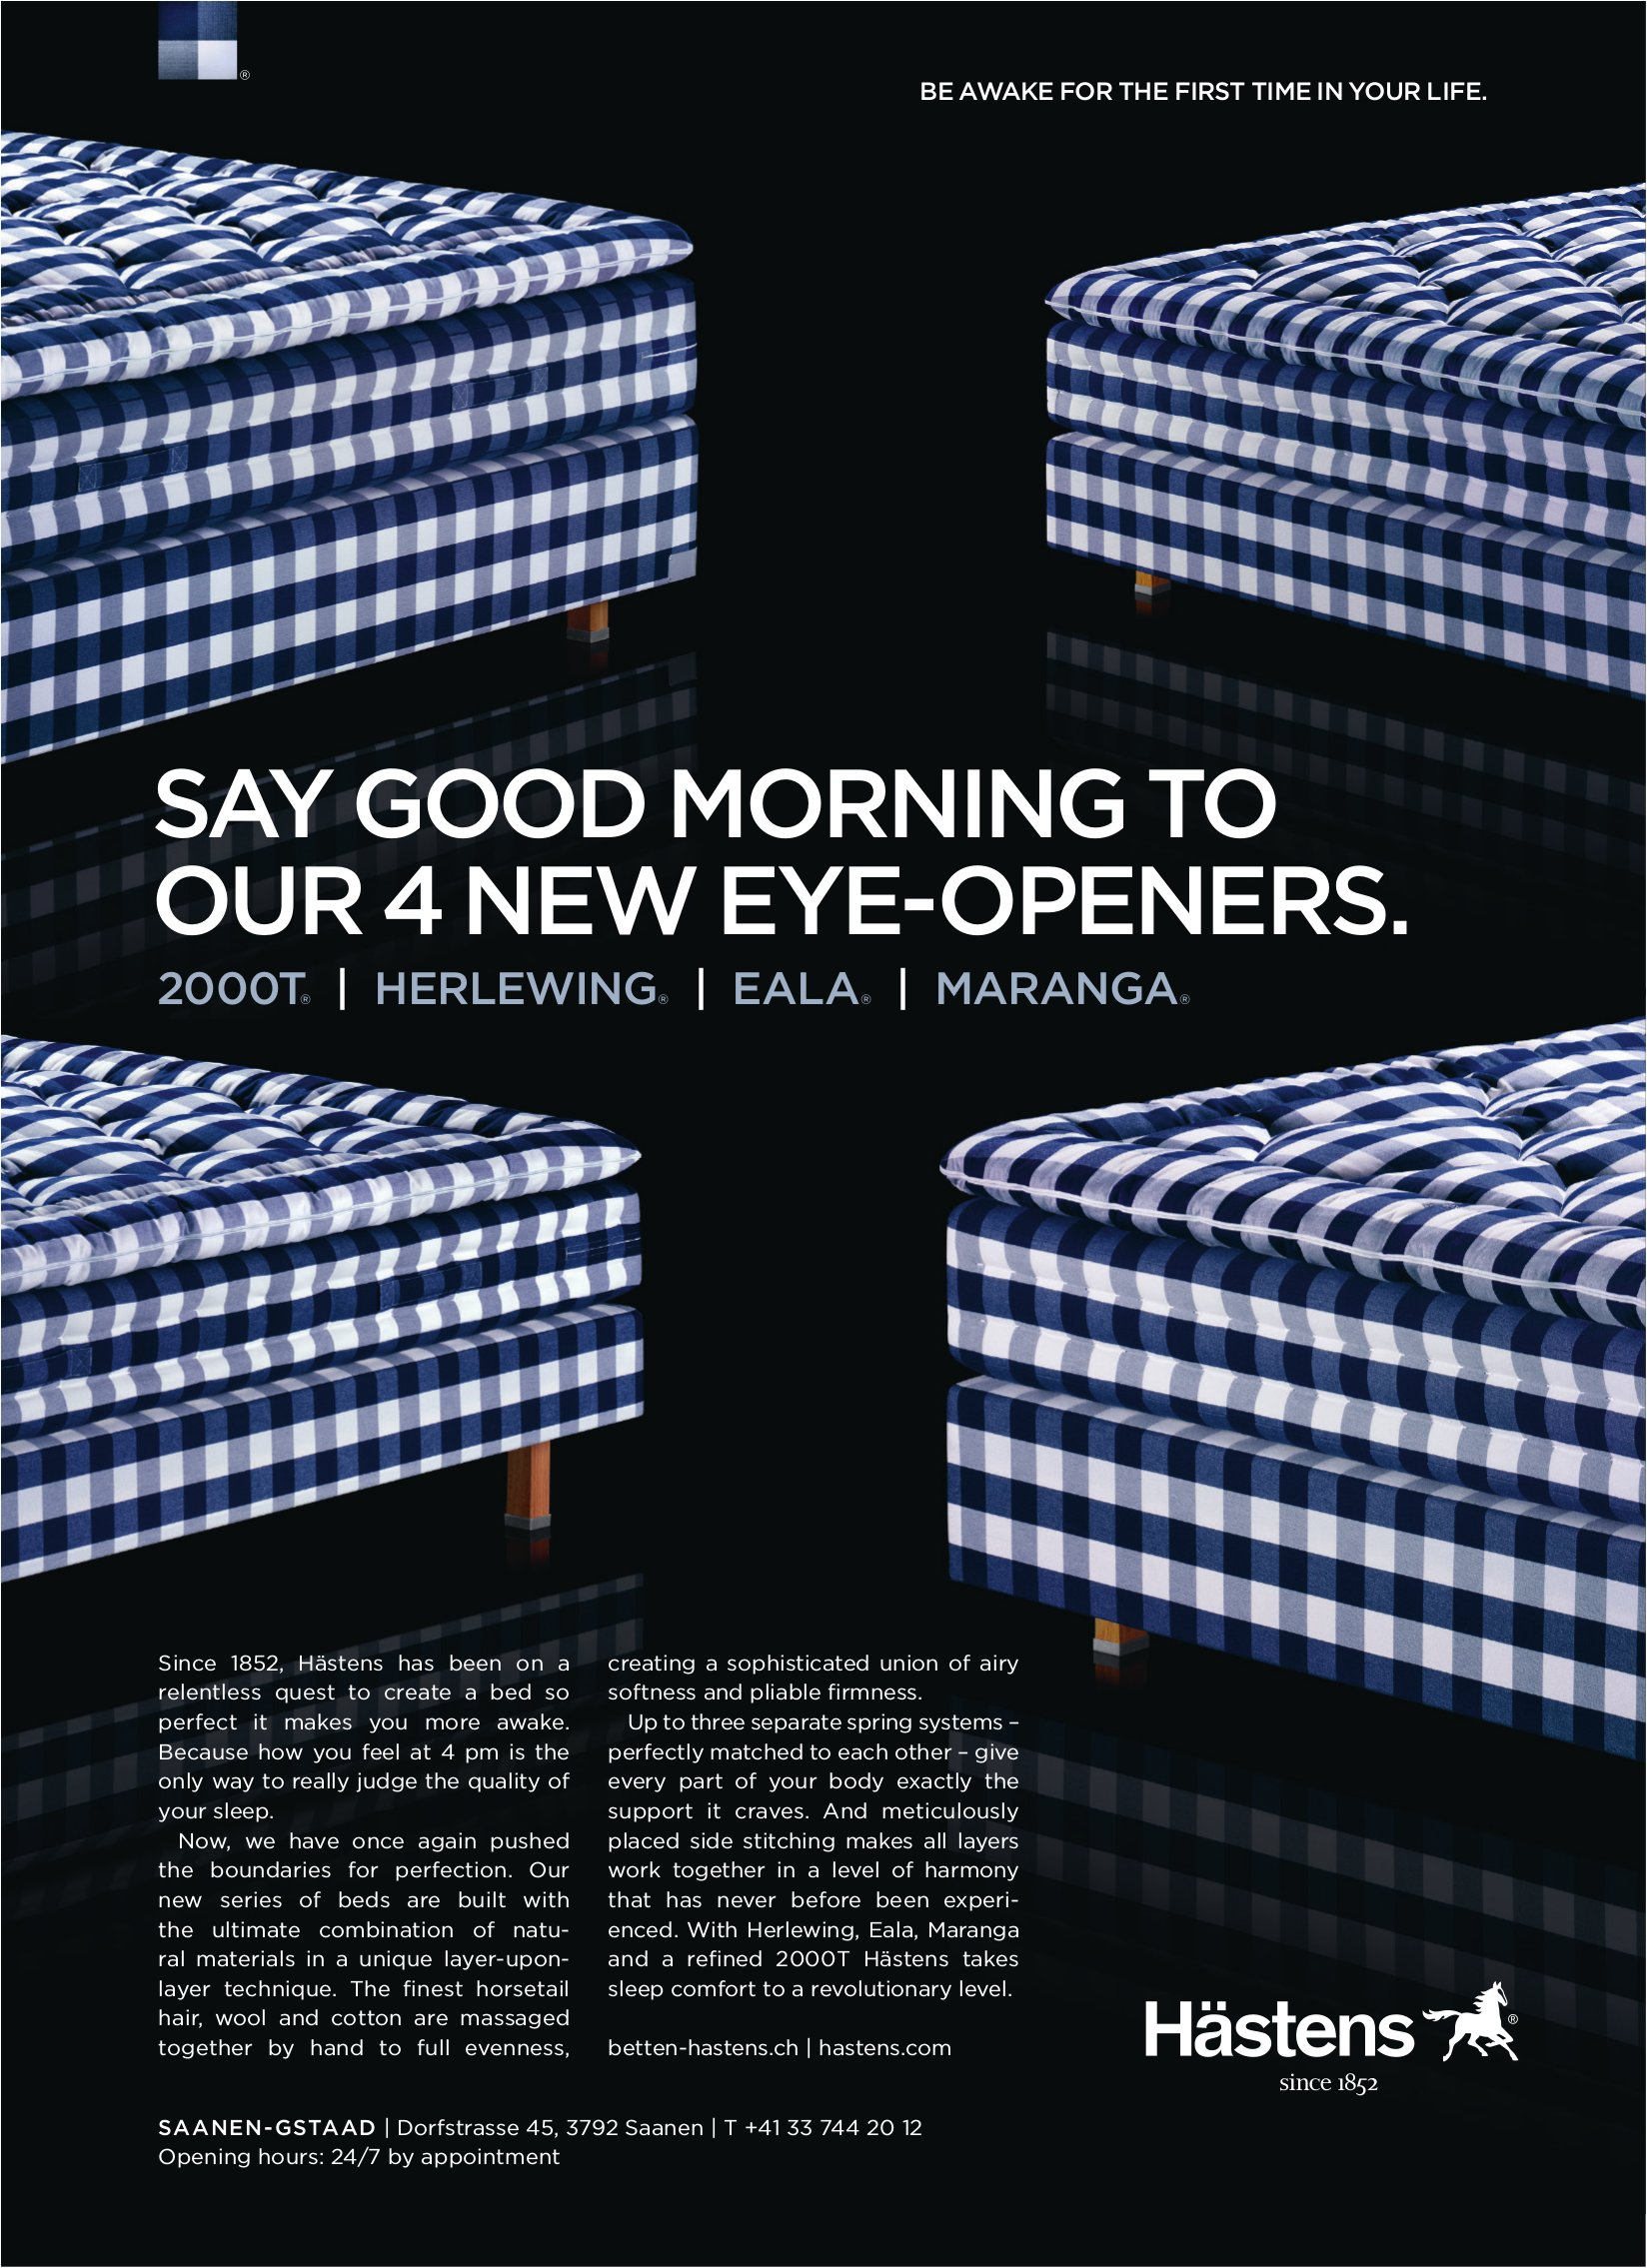 Say good morning to our 4 new eye-openers, Hästens Betten